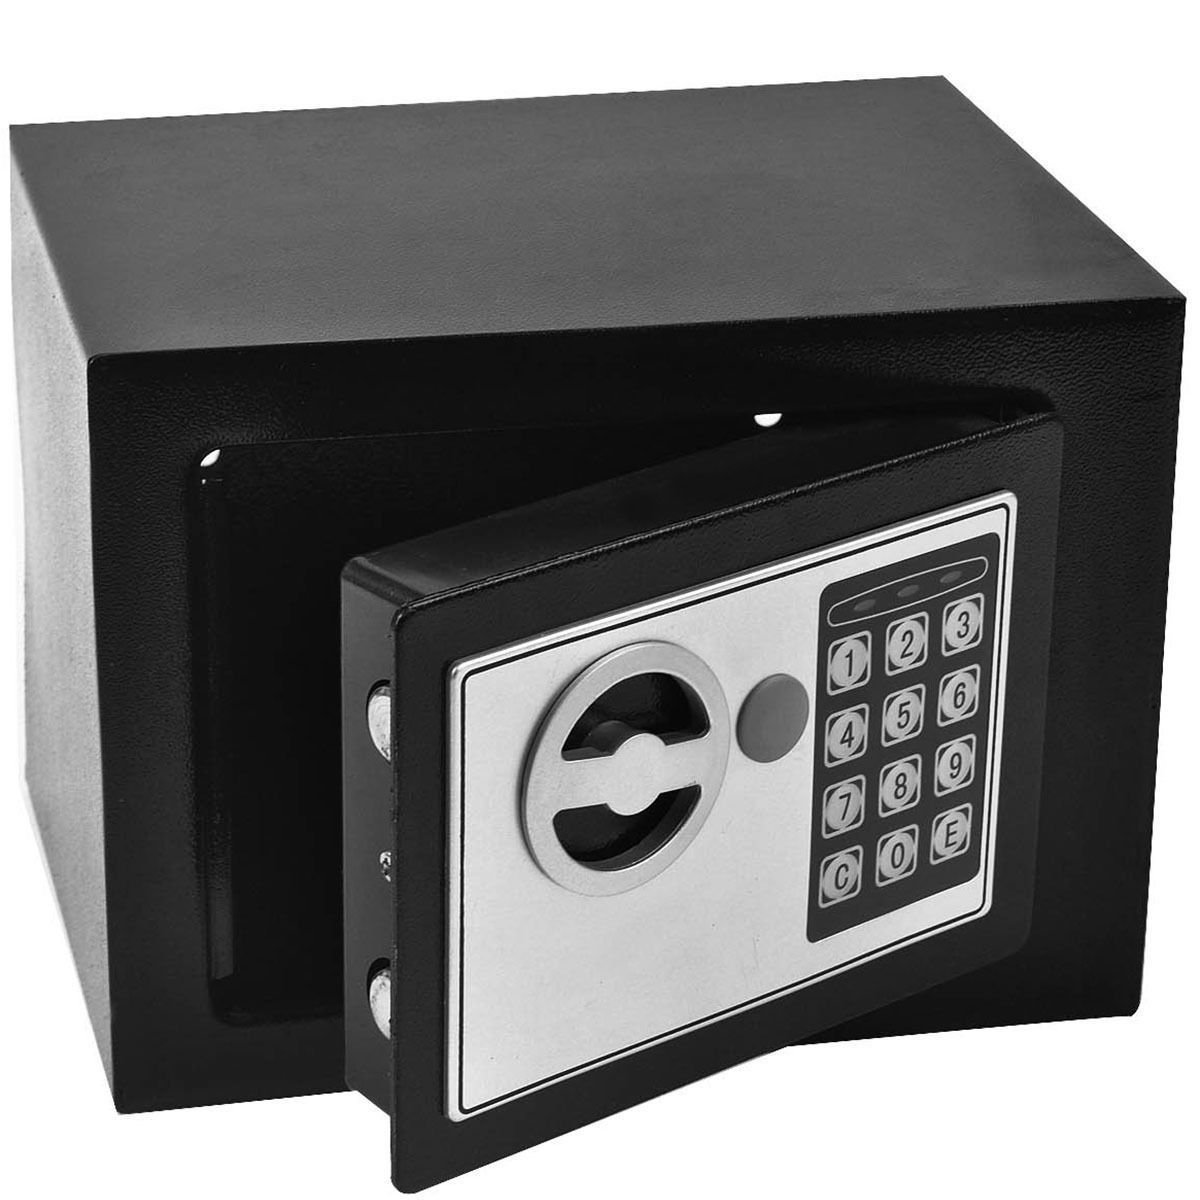 Safstar Digital Electronic Security Safe Box Wall Safes Lock for Jewelry Cash Valuable Home Office Hotel (Black: 9.2'' x 6.8'' x 6.8'')